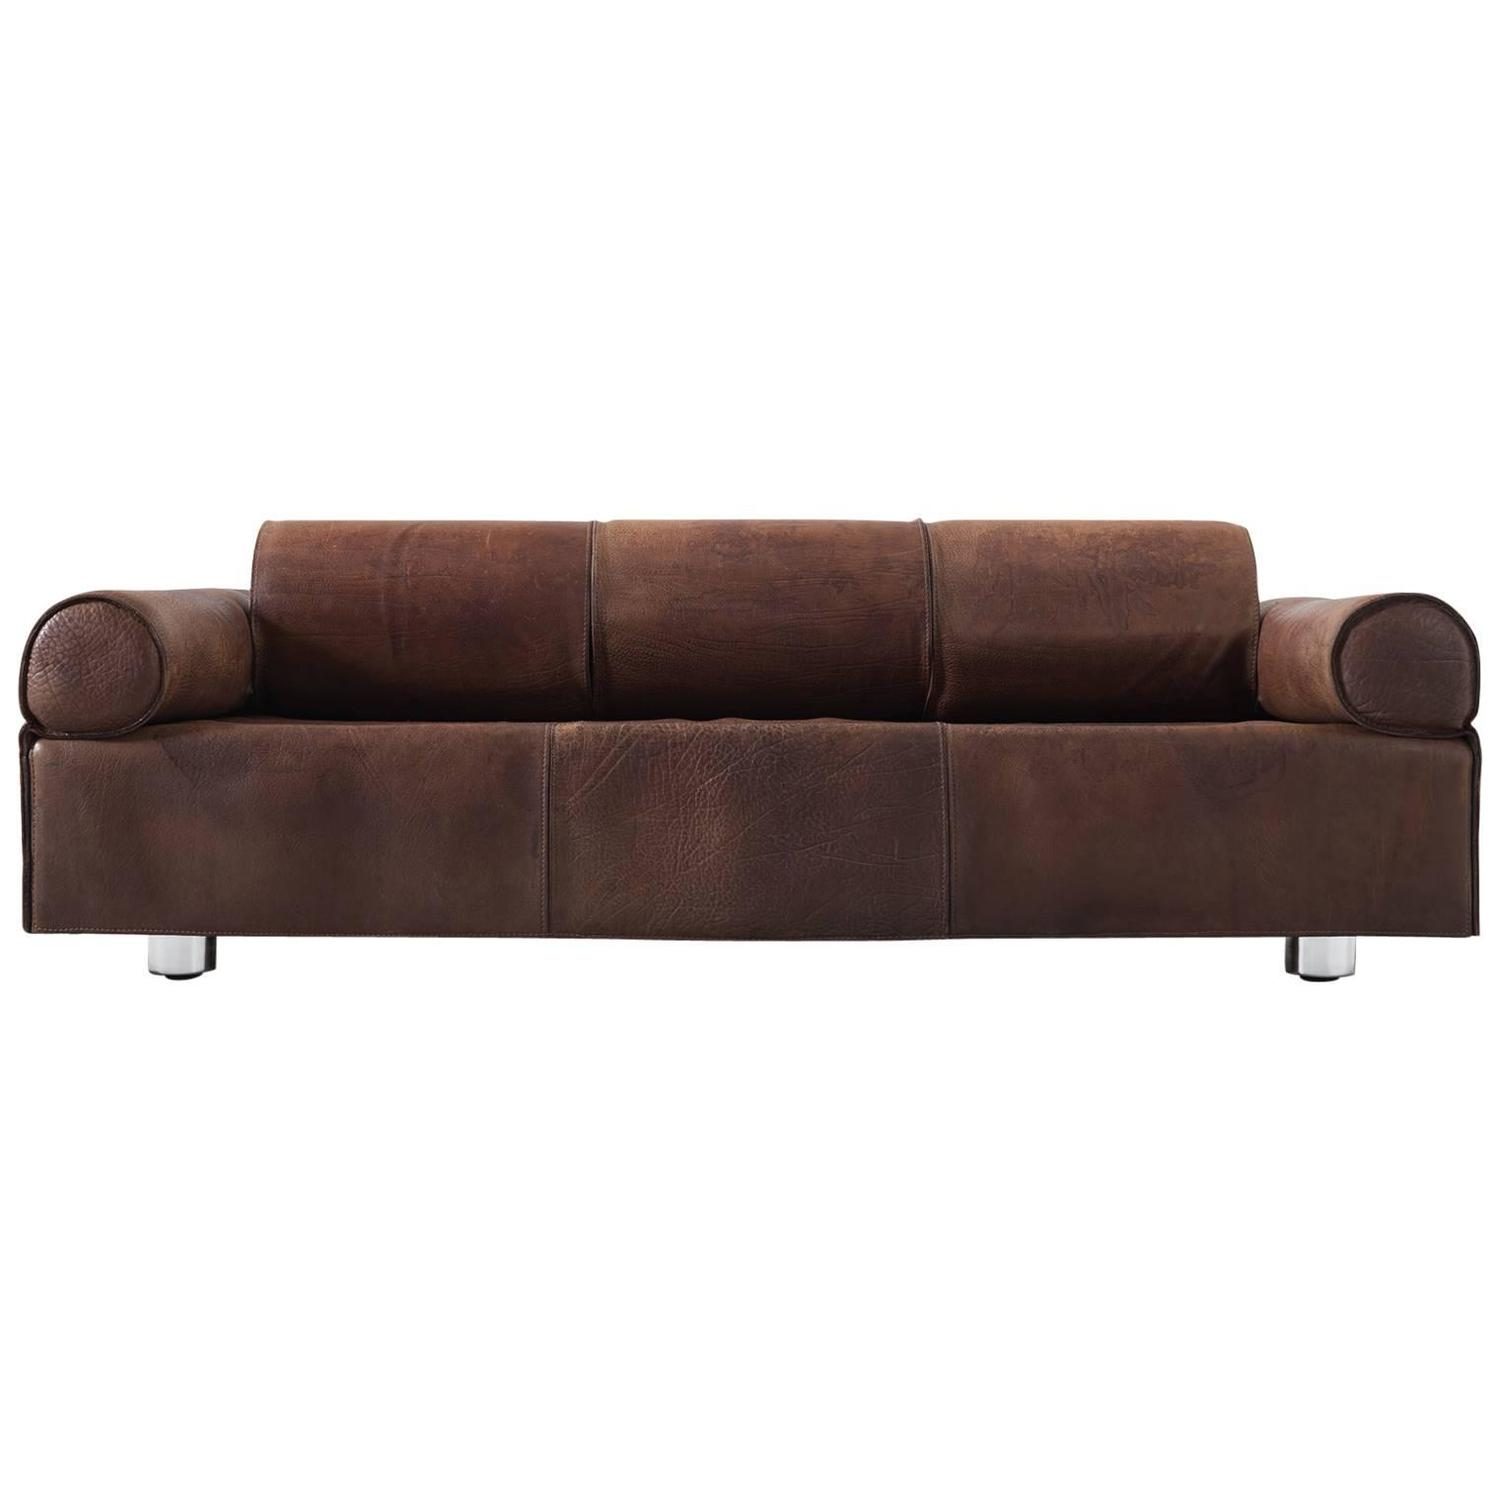 Marzio Cecchi Rare Brown Buffalo Leather Sofa For Sale at 1stdibs